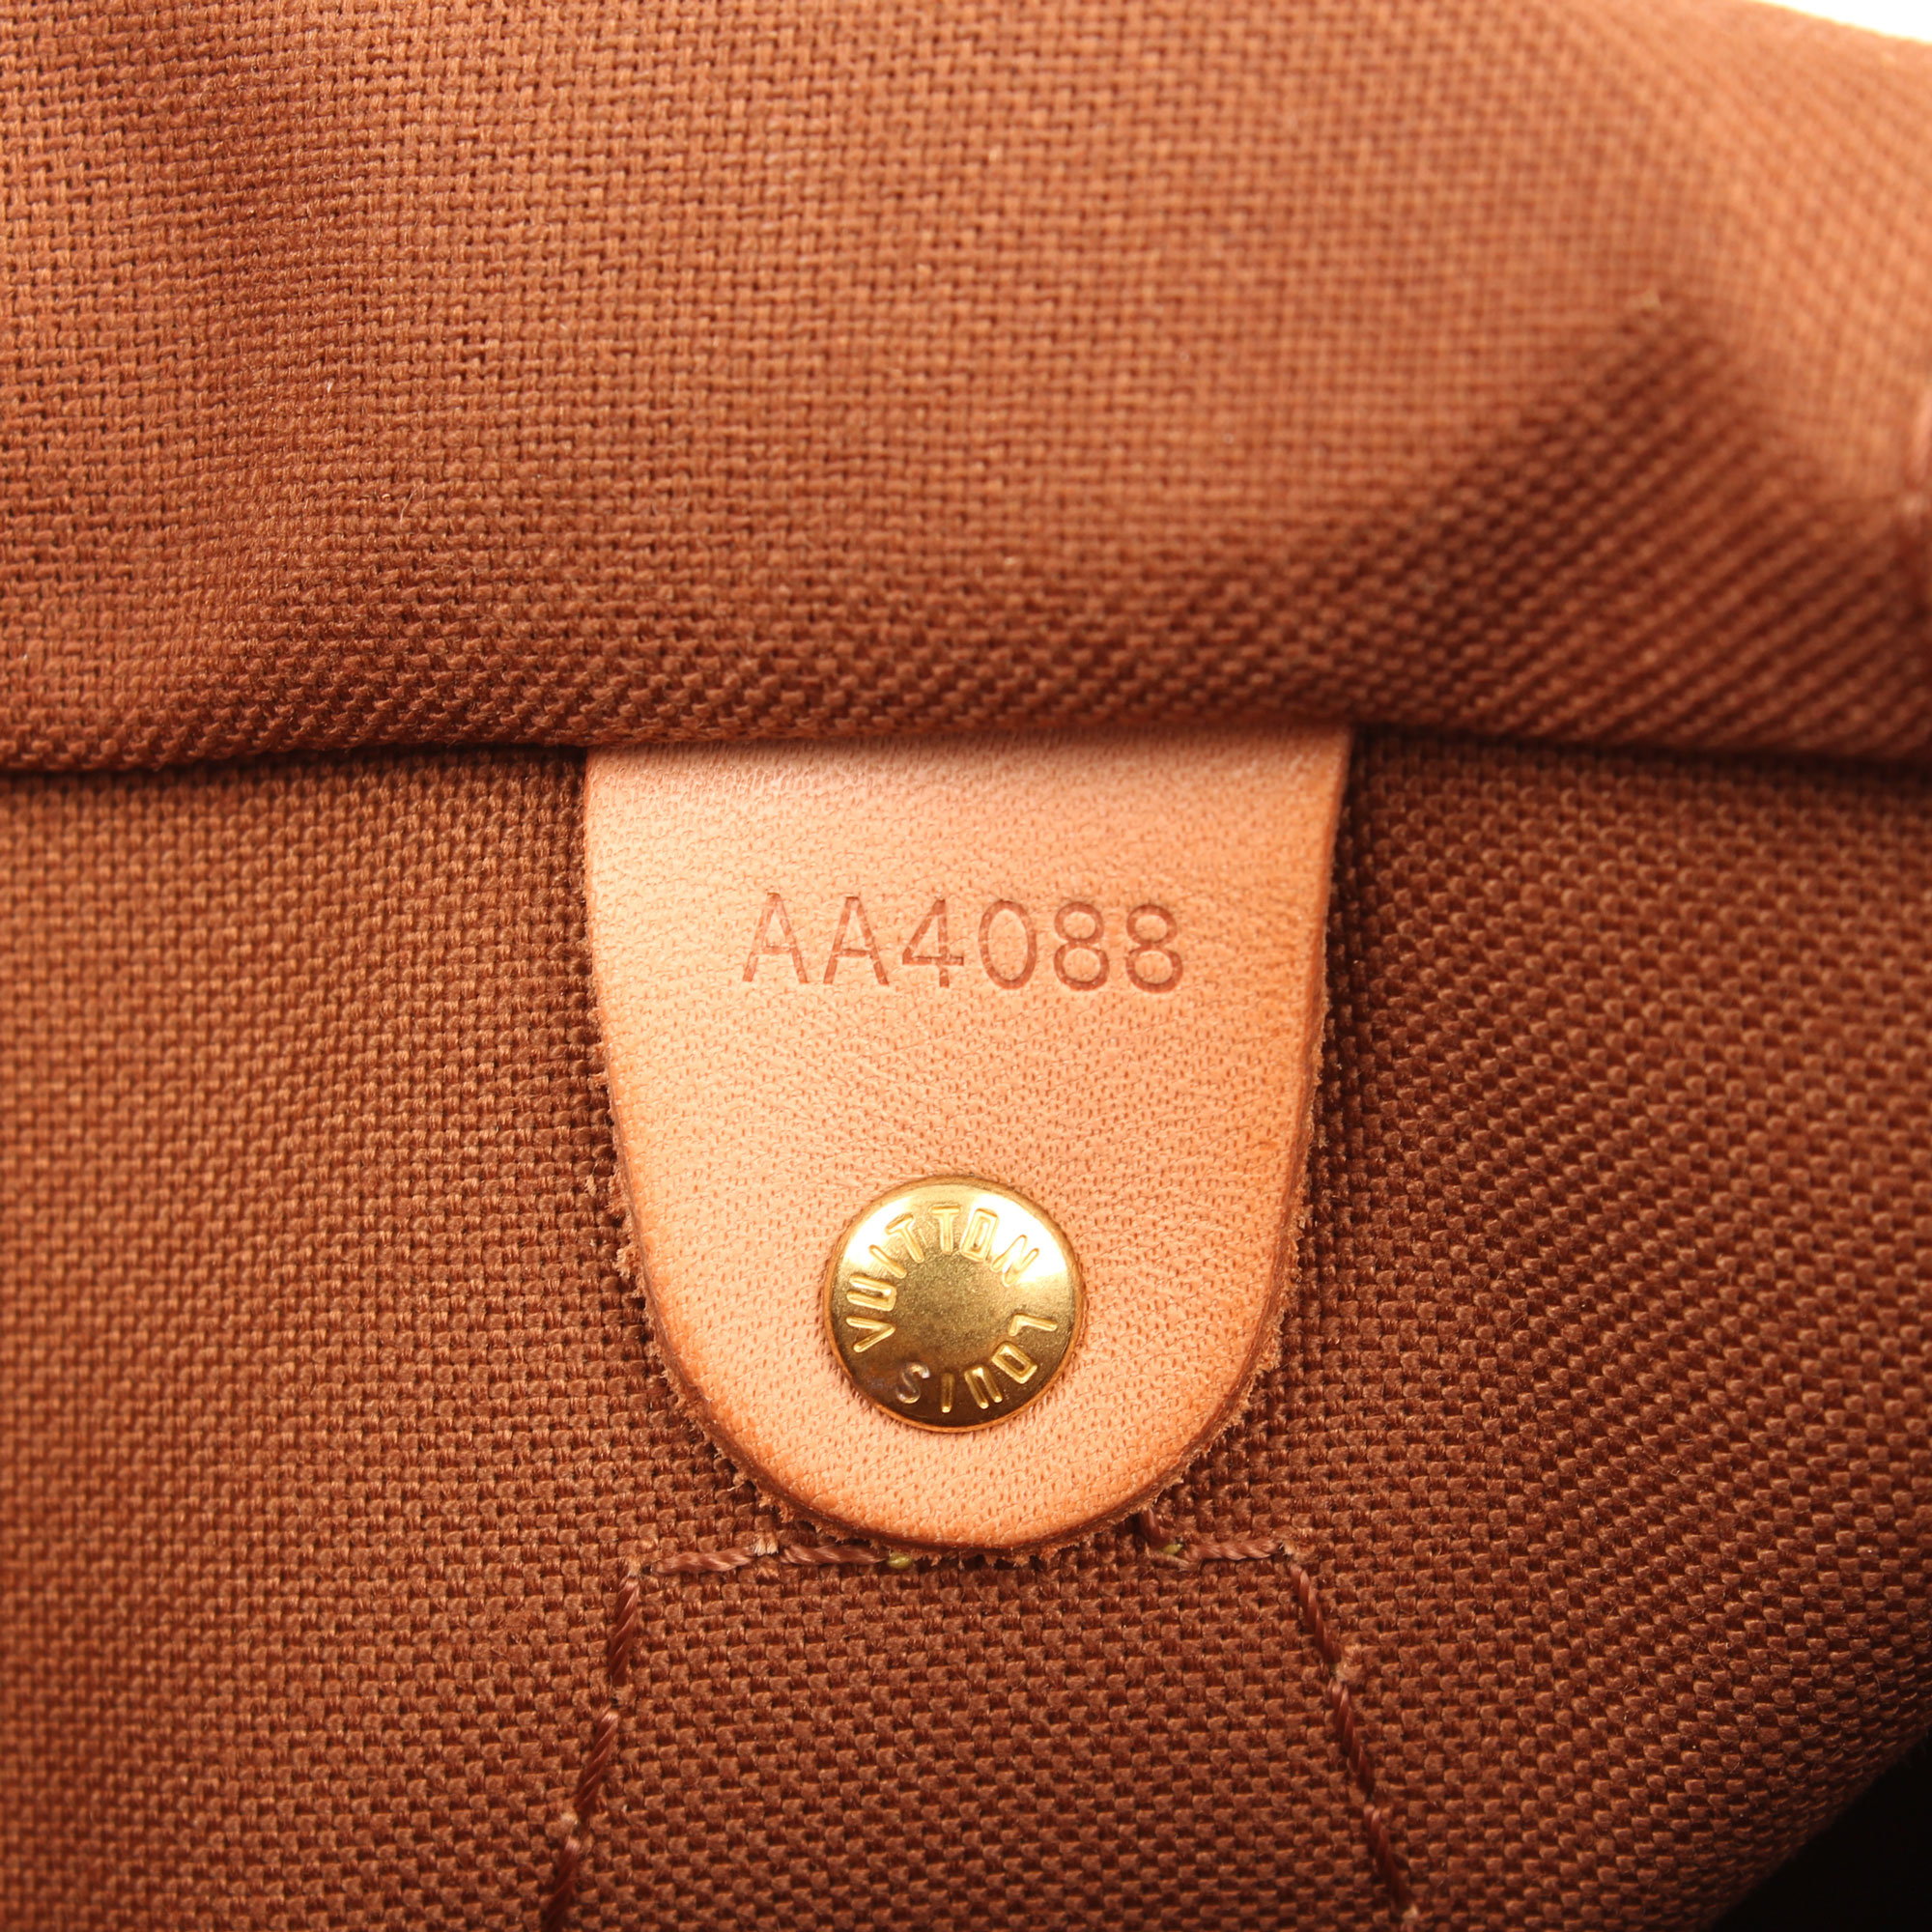 Imagen del serial number del bolso louis vuitton speedy 25 monogram